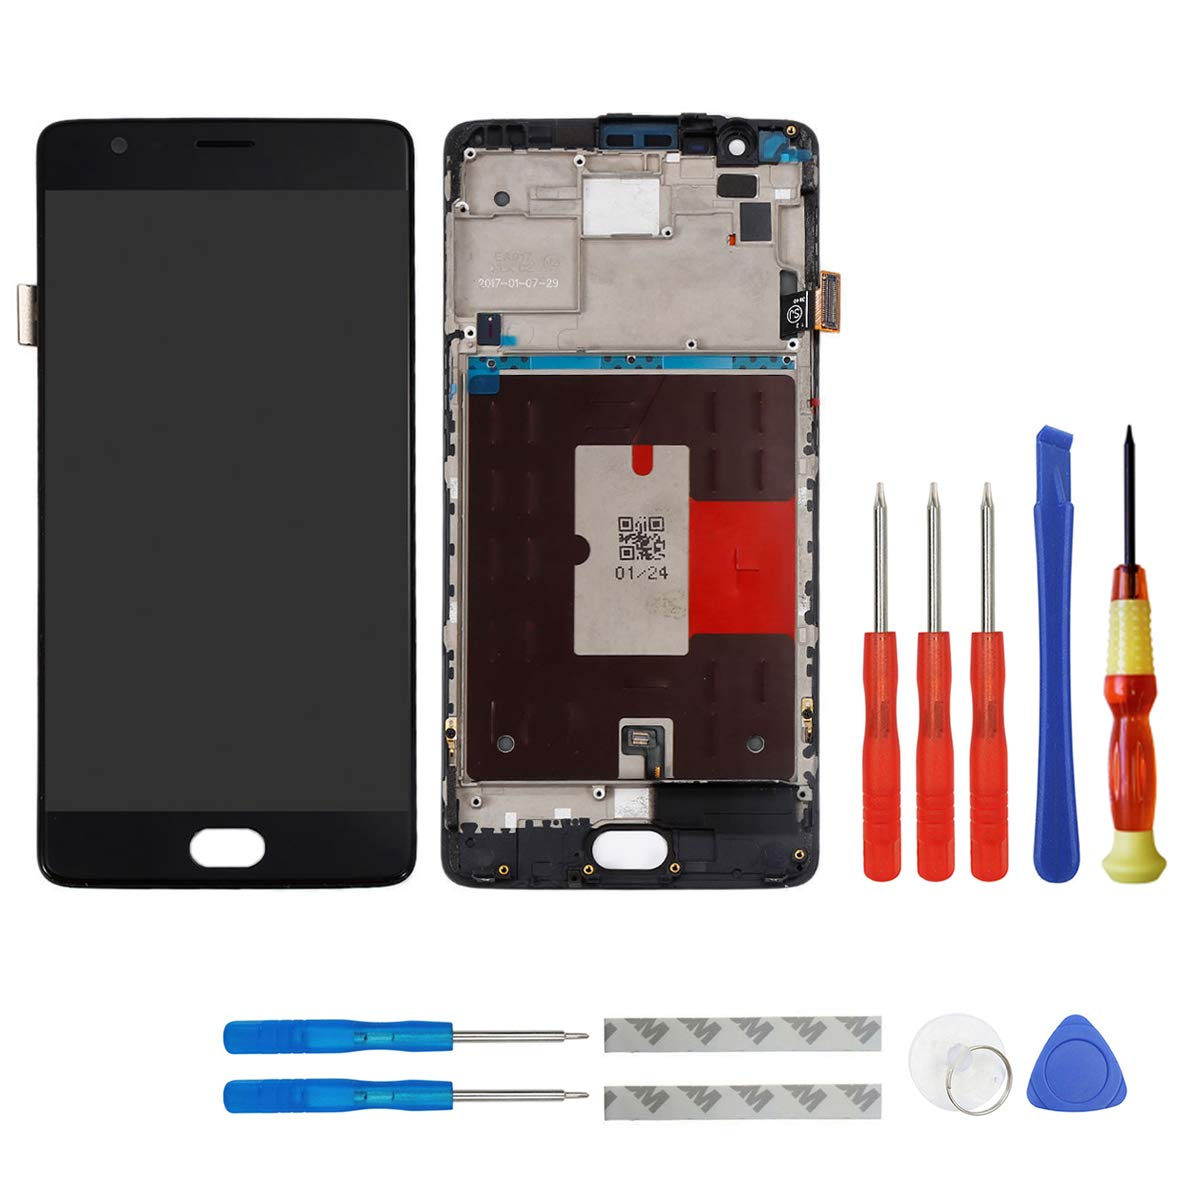 E-yiiviil Screen Replacement Compatible for Oneplus 3 1+3 Display LCD Touch Screen with Frame (Black)+ Tools by E-YIIVIIL